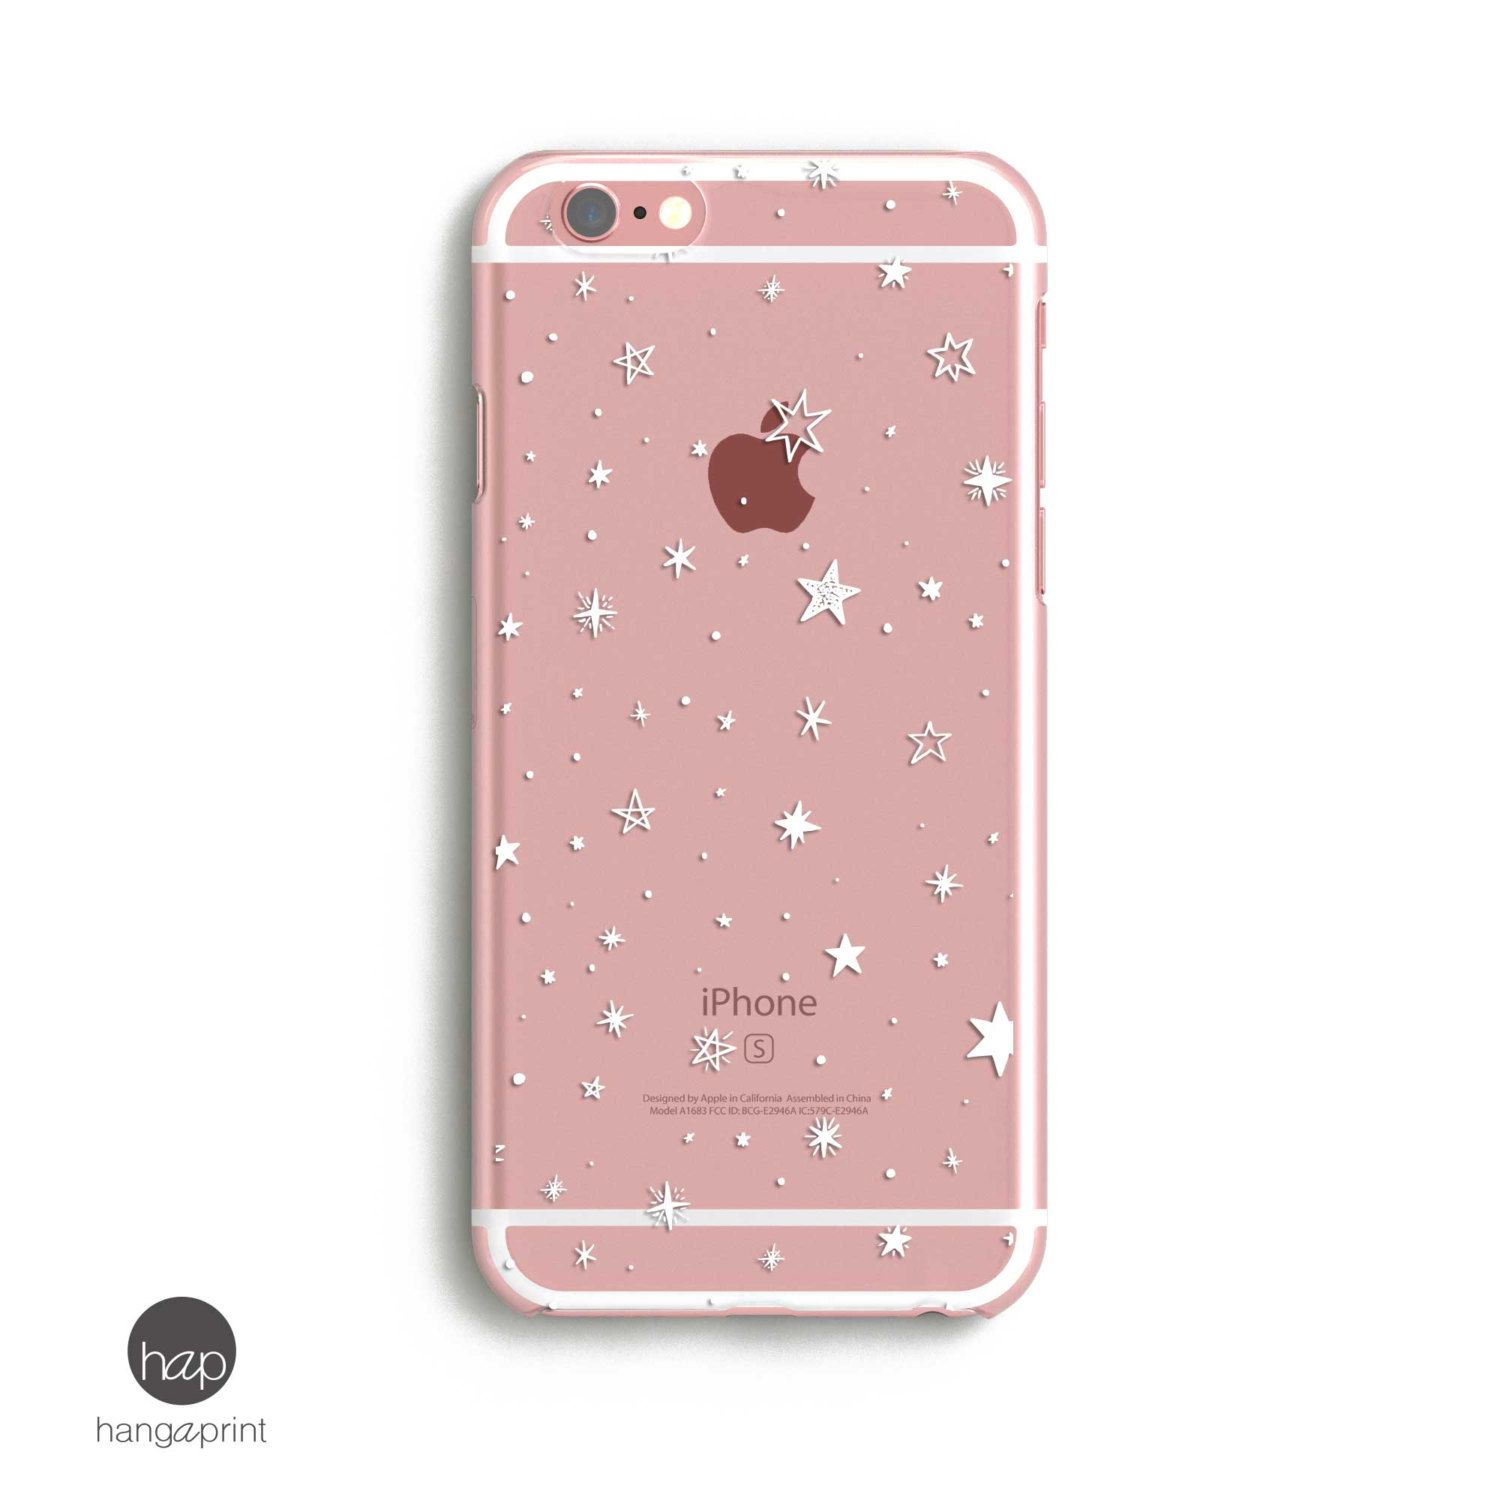 7 phone case iphone